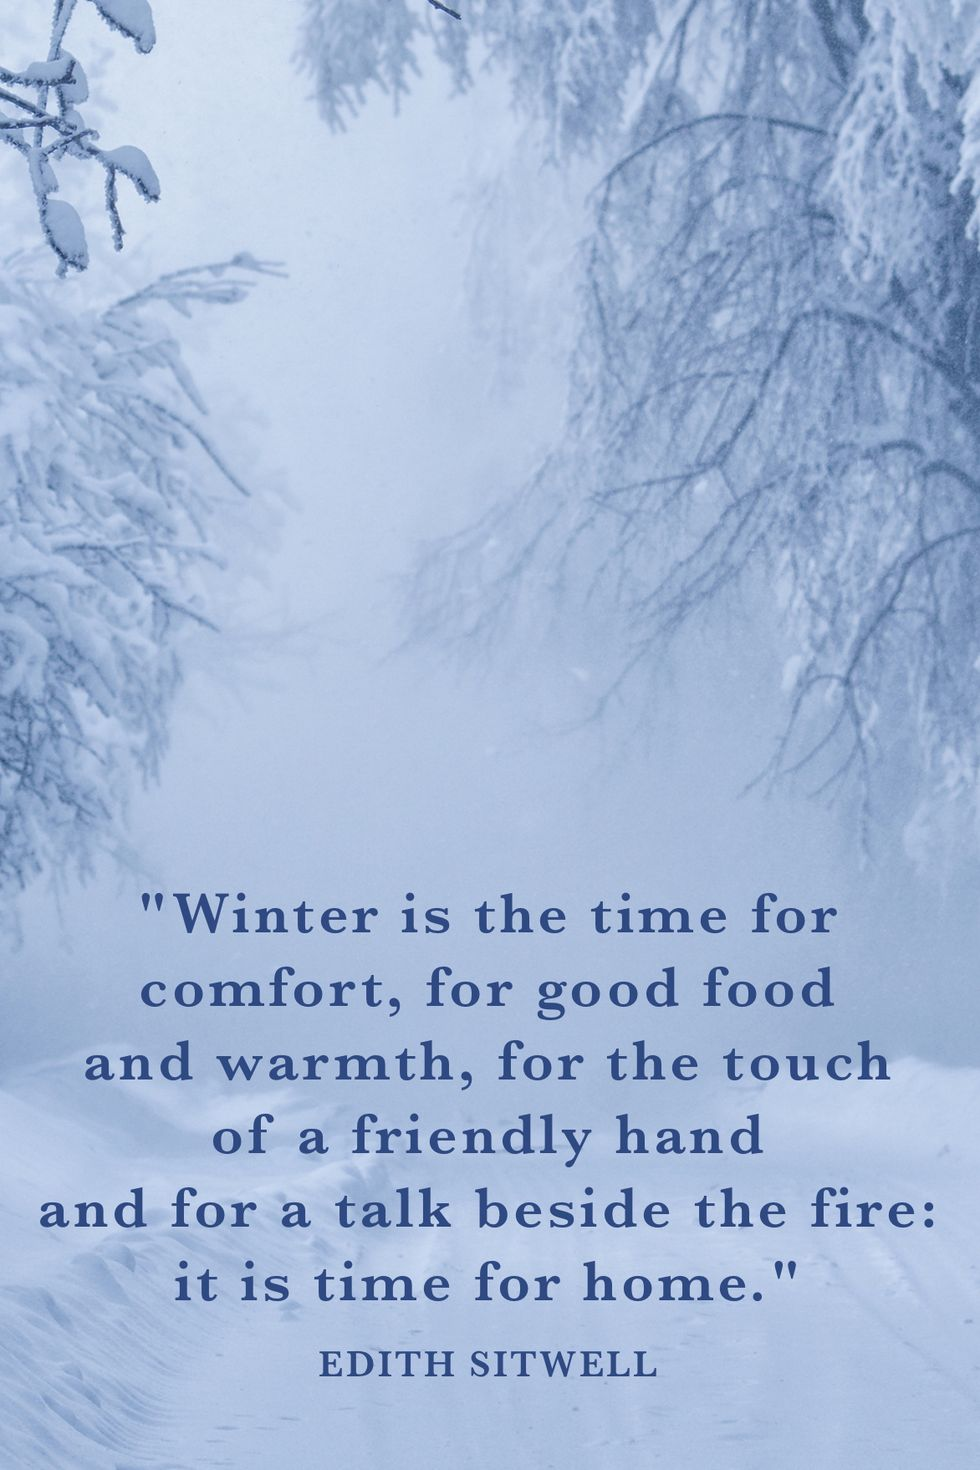 40 Best Winter Quotes To Help You See The Beauty Of Every Snowfall Snow Quotes Winter Quotes Funny Images With Quotes